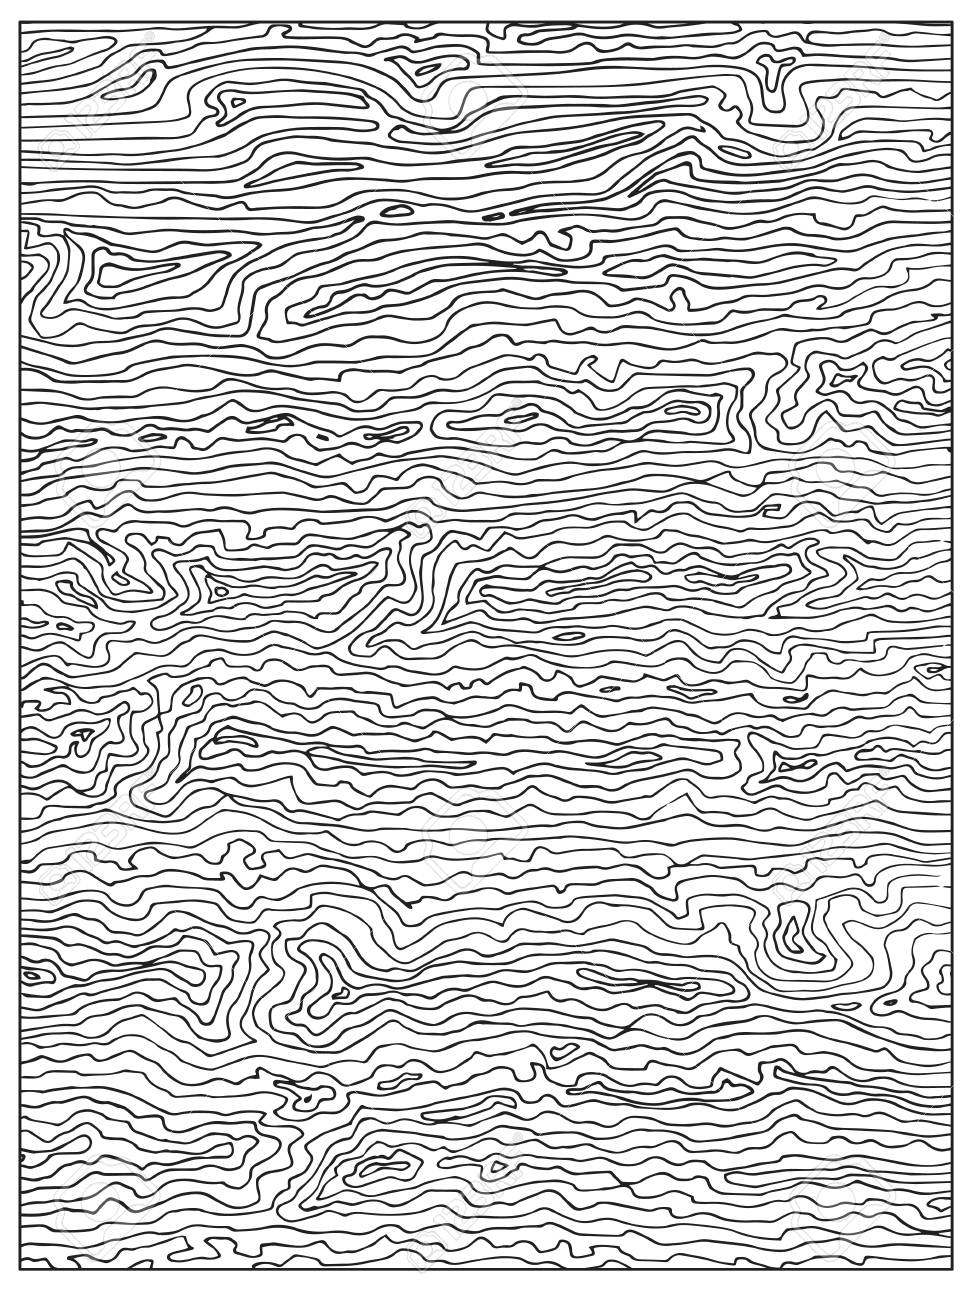 Hand Drawn Uncolored Abstract Adult Coloring Book Page With Wood ...